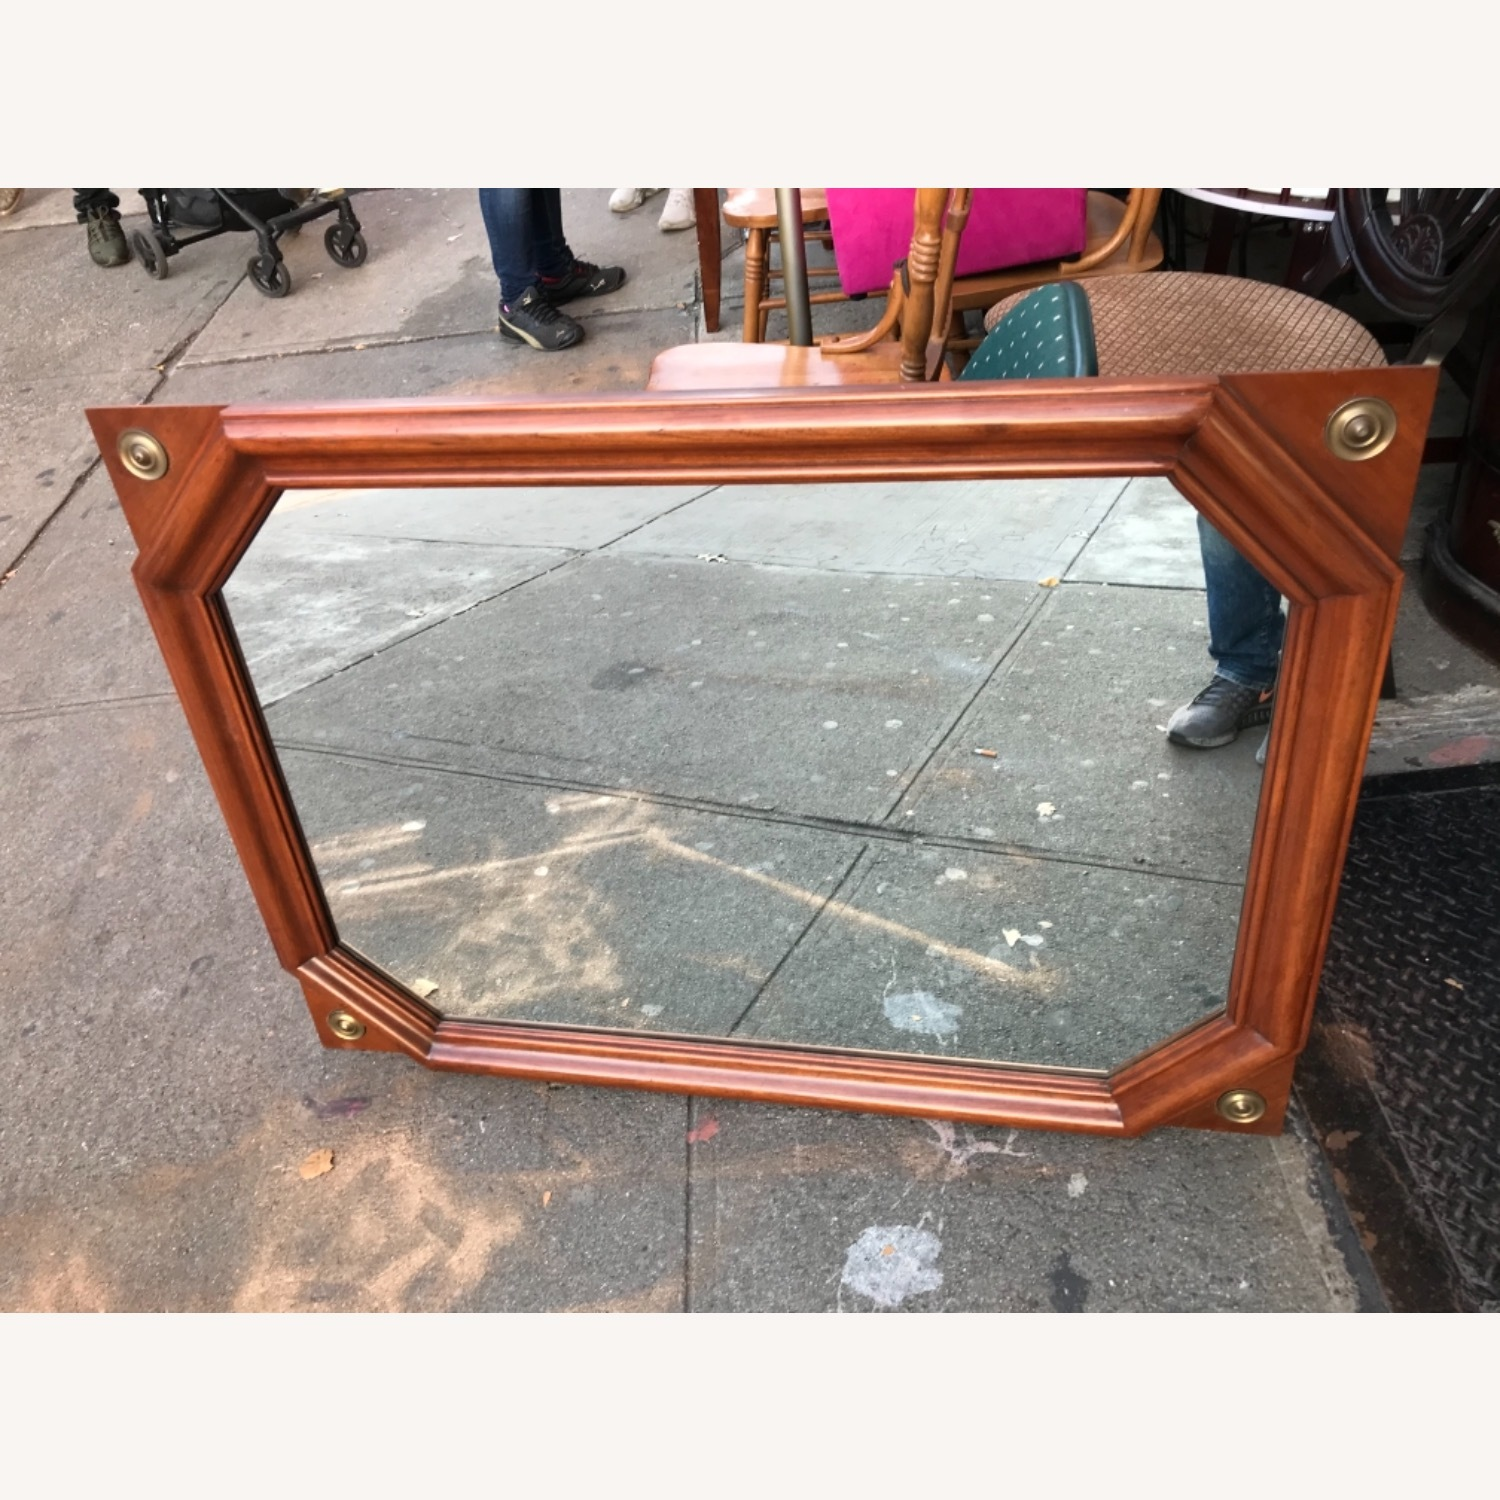 Vintage 1970s Wooden Framed Wall Mirror - image-12